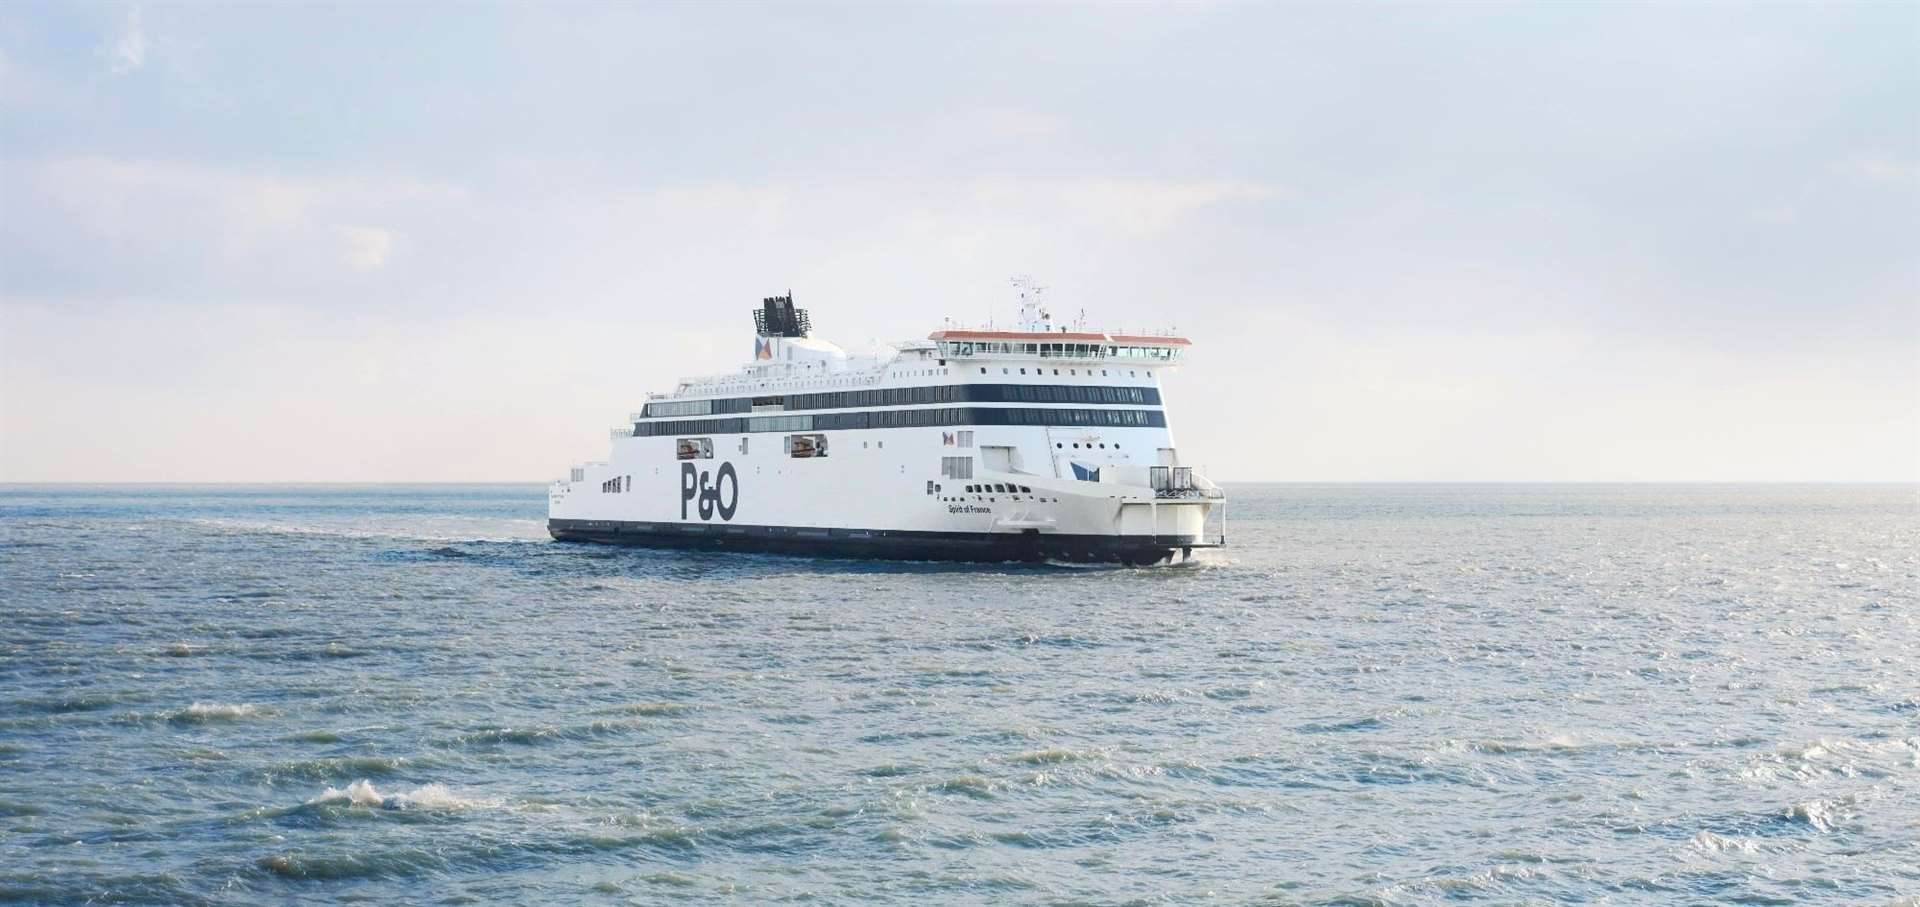 P&O ferries have brought in new measures